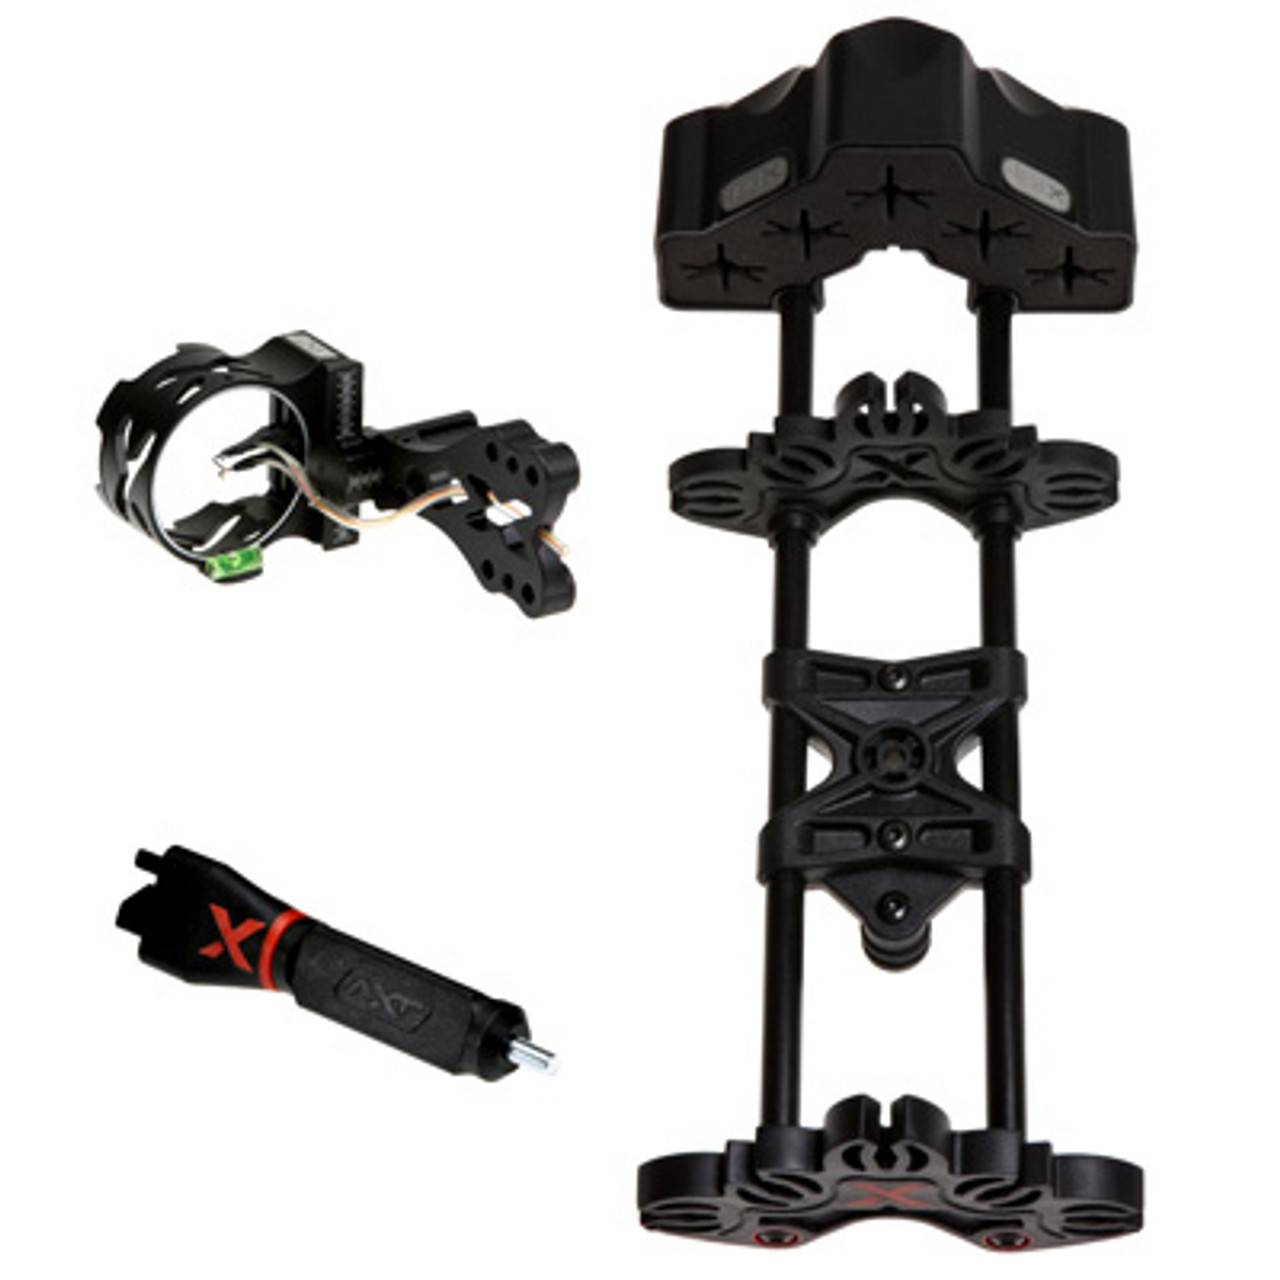 AXT Performance Package by Archer Xtreme